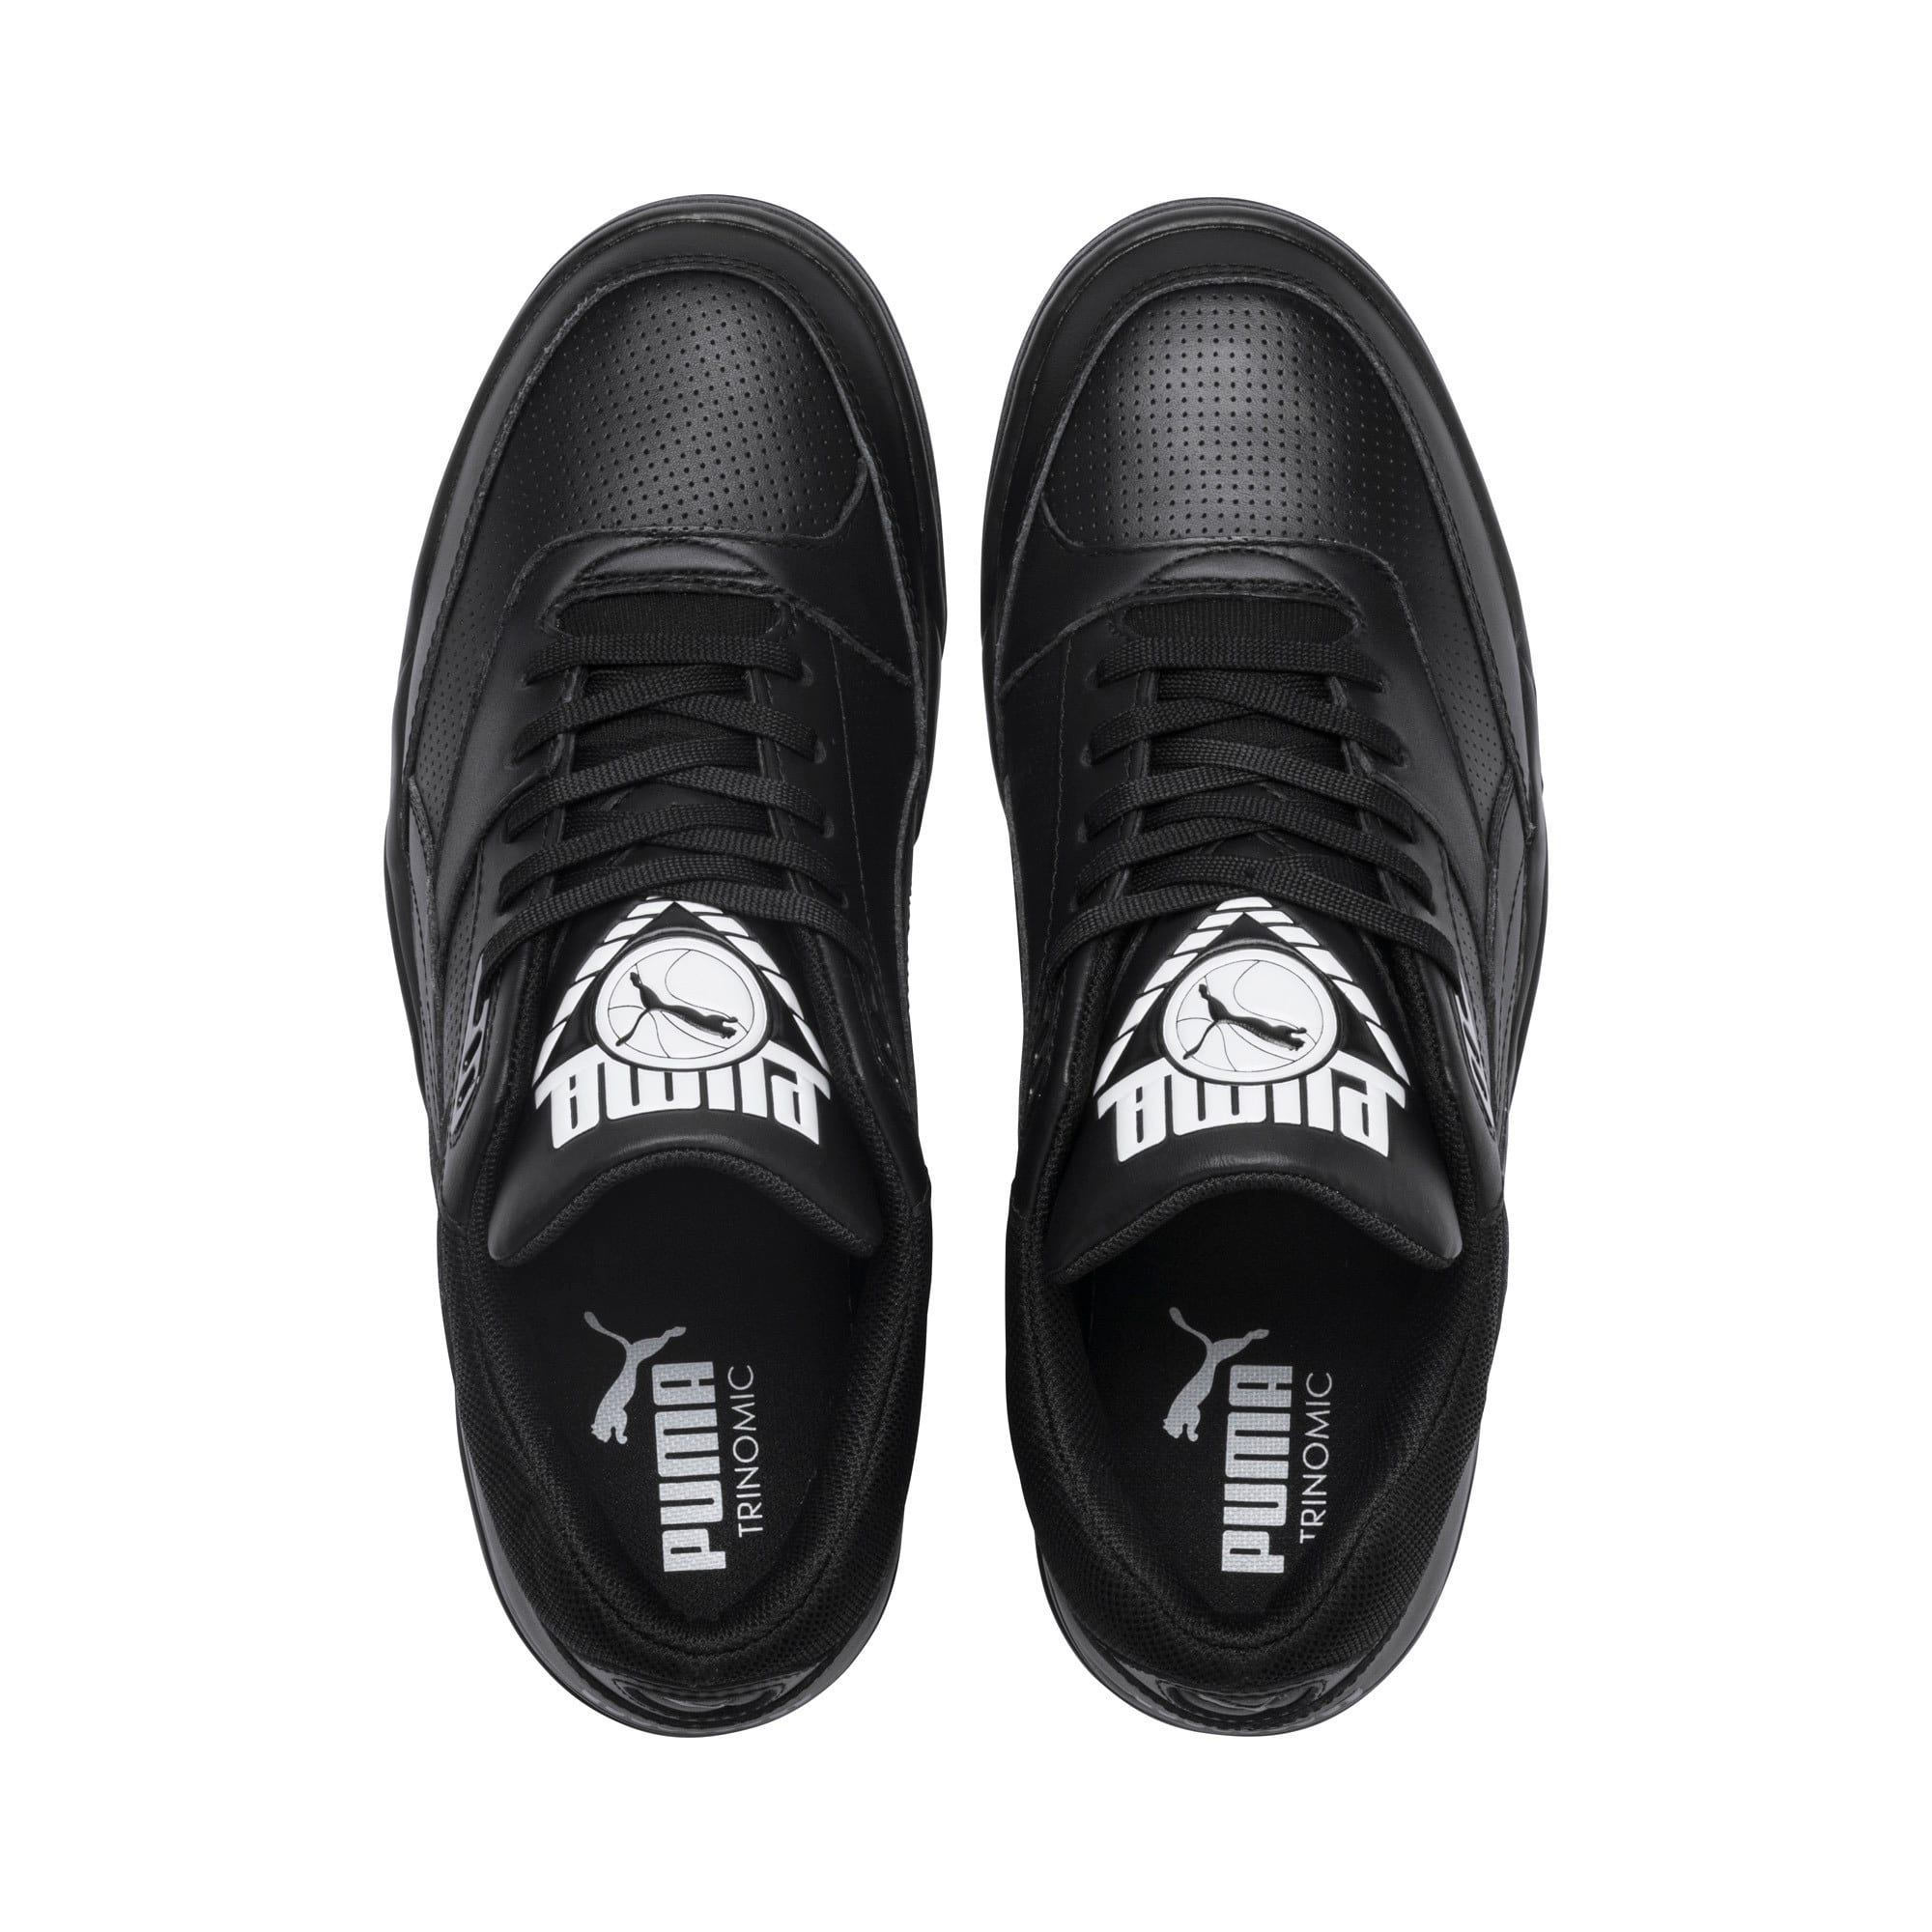 Thumbnail 6 of Palace Guard Sneakers, Puma Black-Puma White, medium